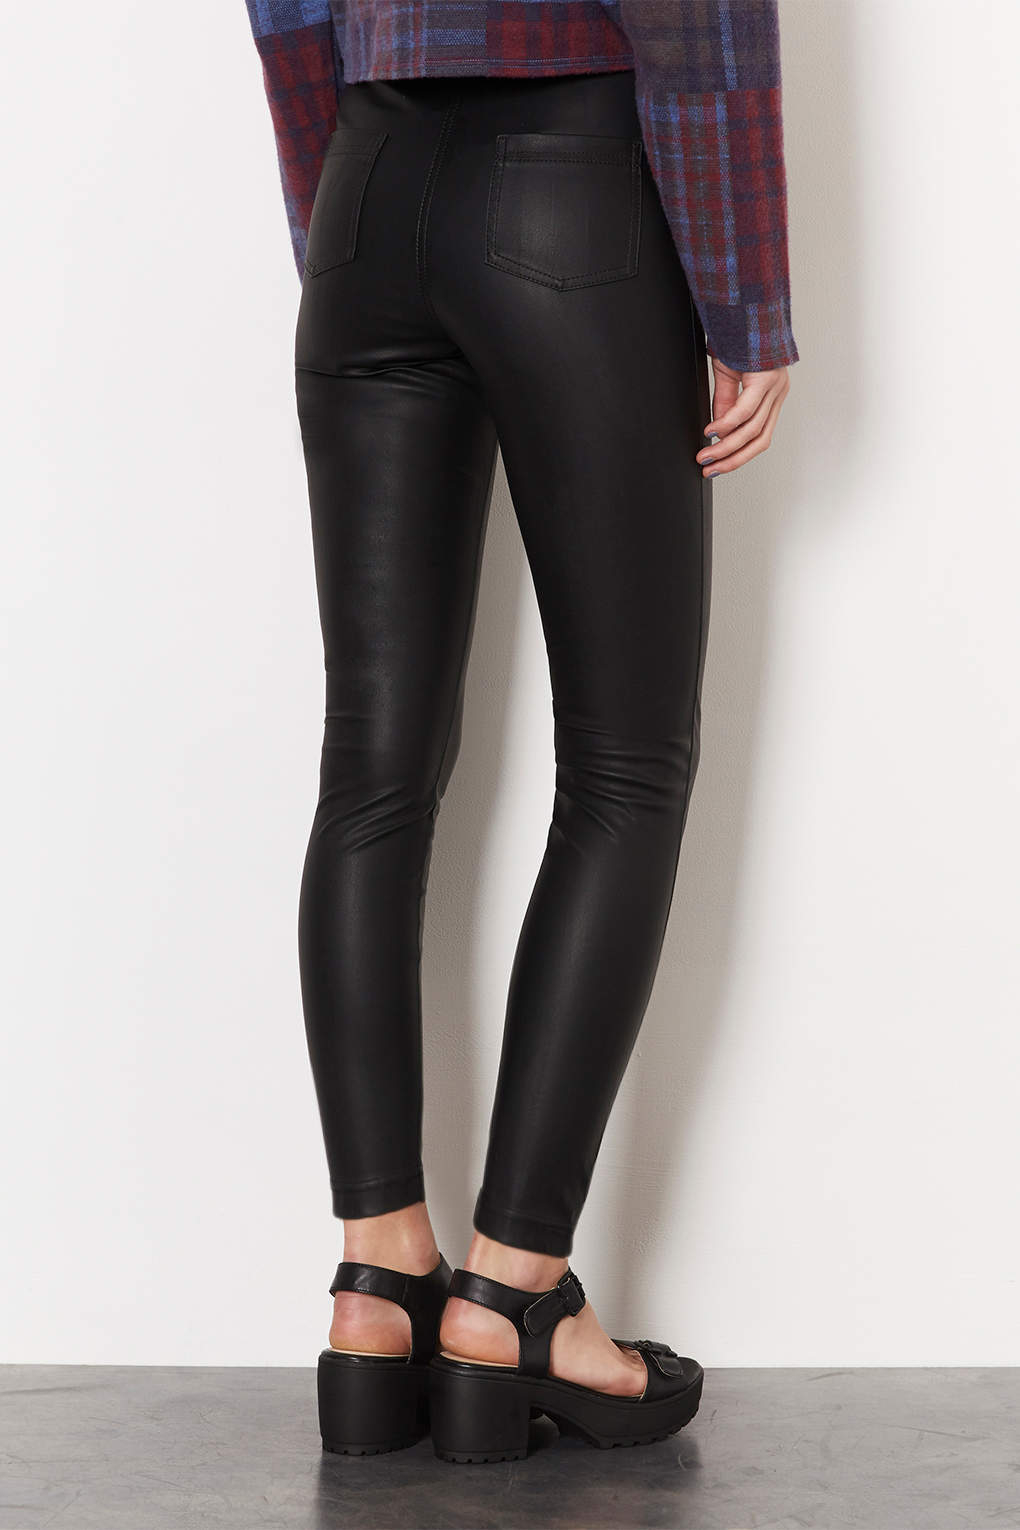 2e3dd9bf242d59 TOPSHOP Petite Leather Look Highwaisted Trousers in Black - Lyst